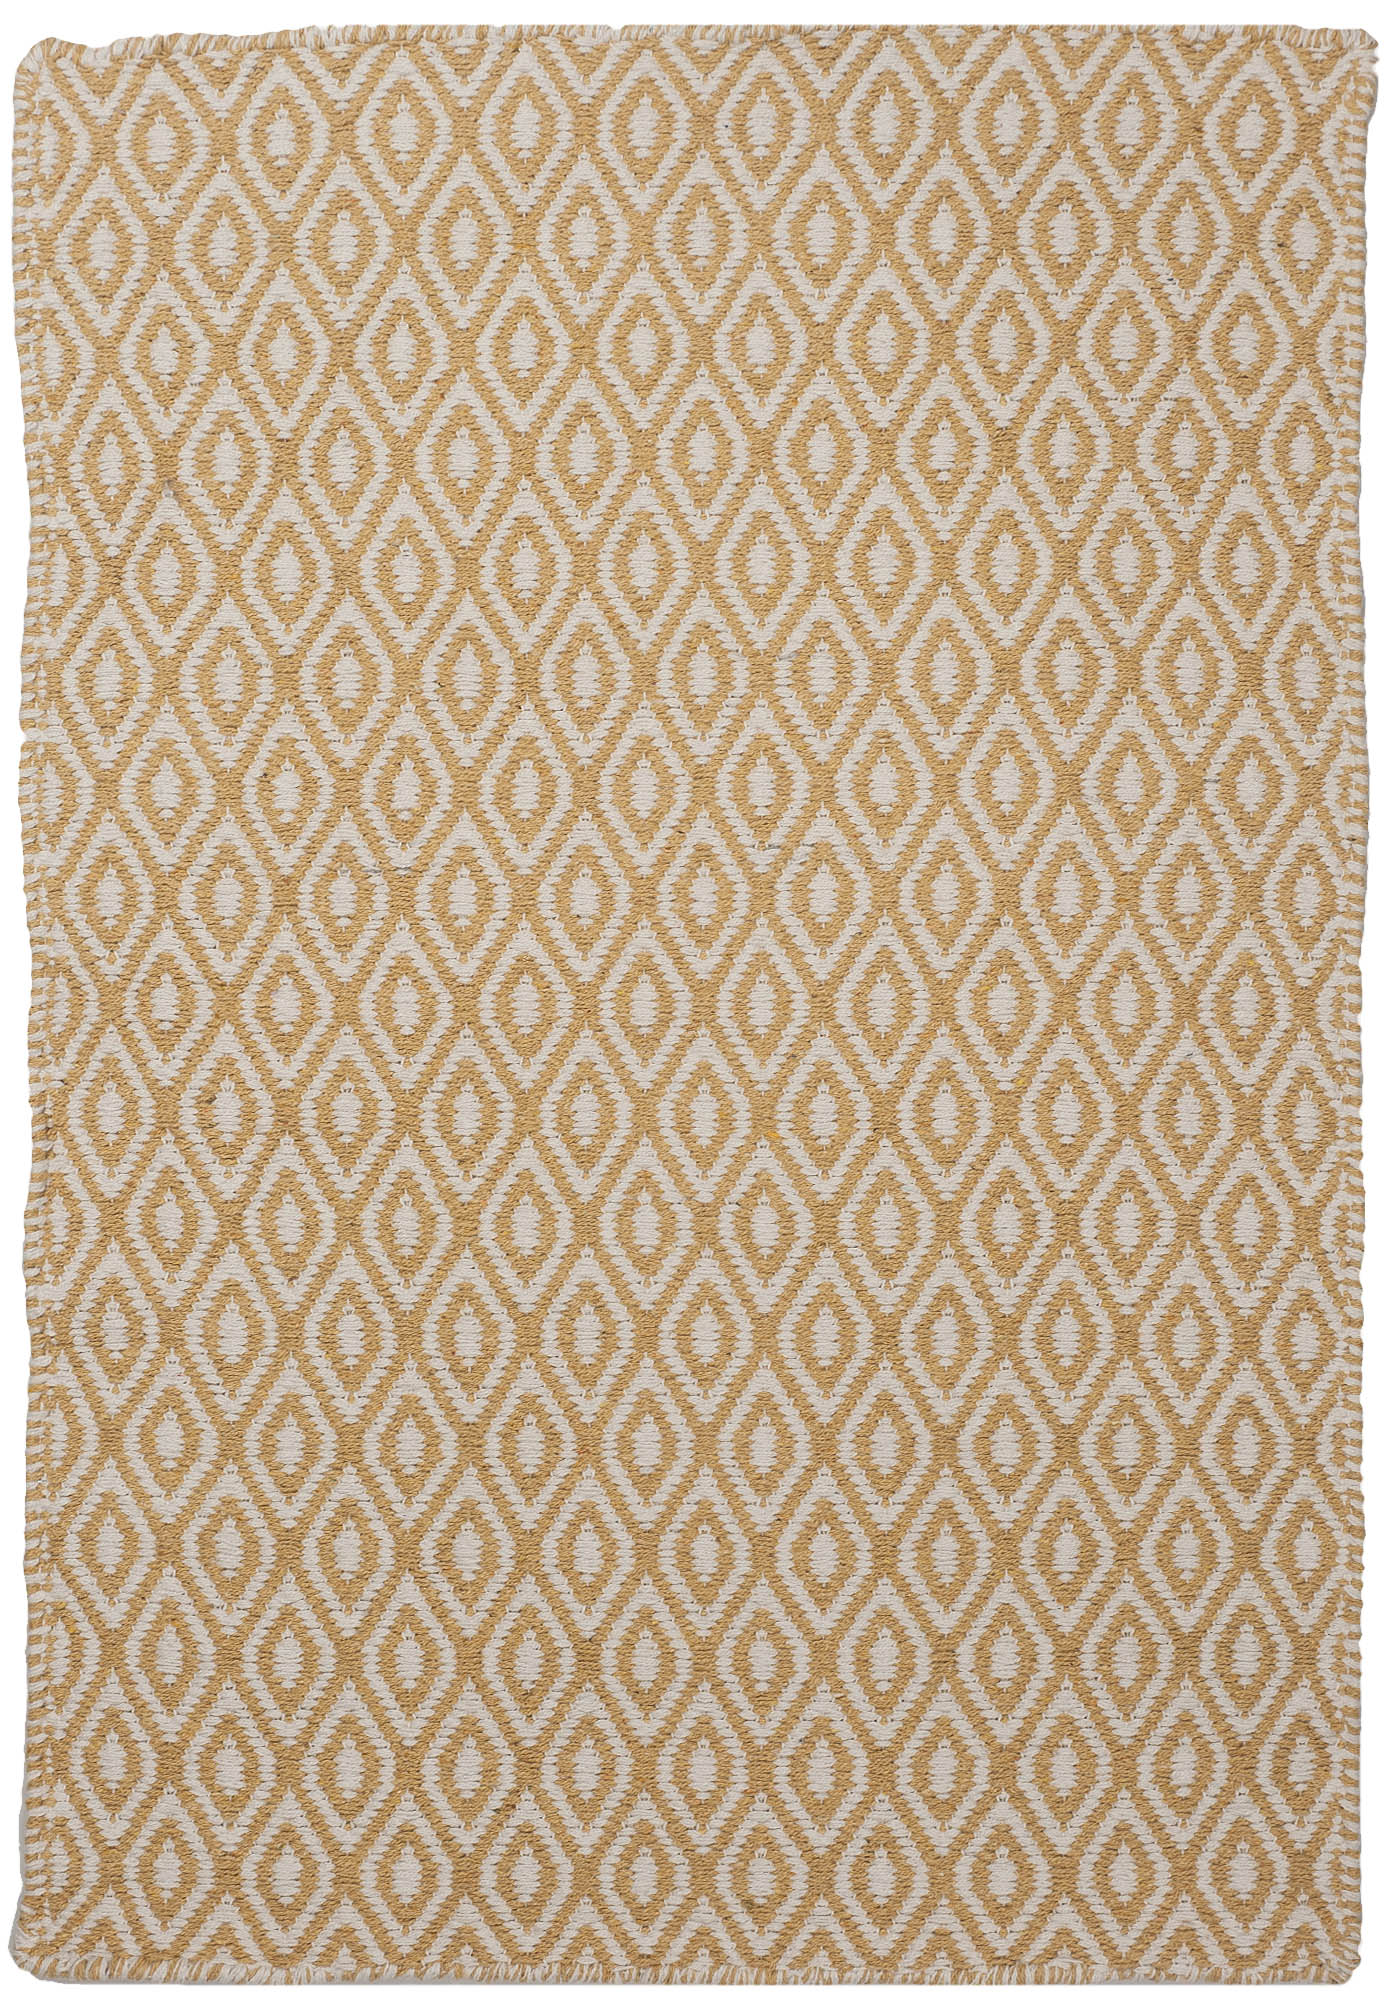 Chelsea Eco Cotton Rug U2013 Yellow White _022; Chelsea ...